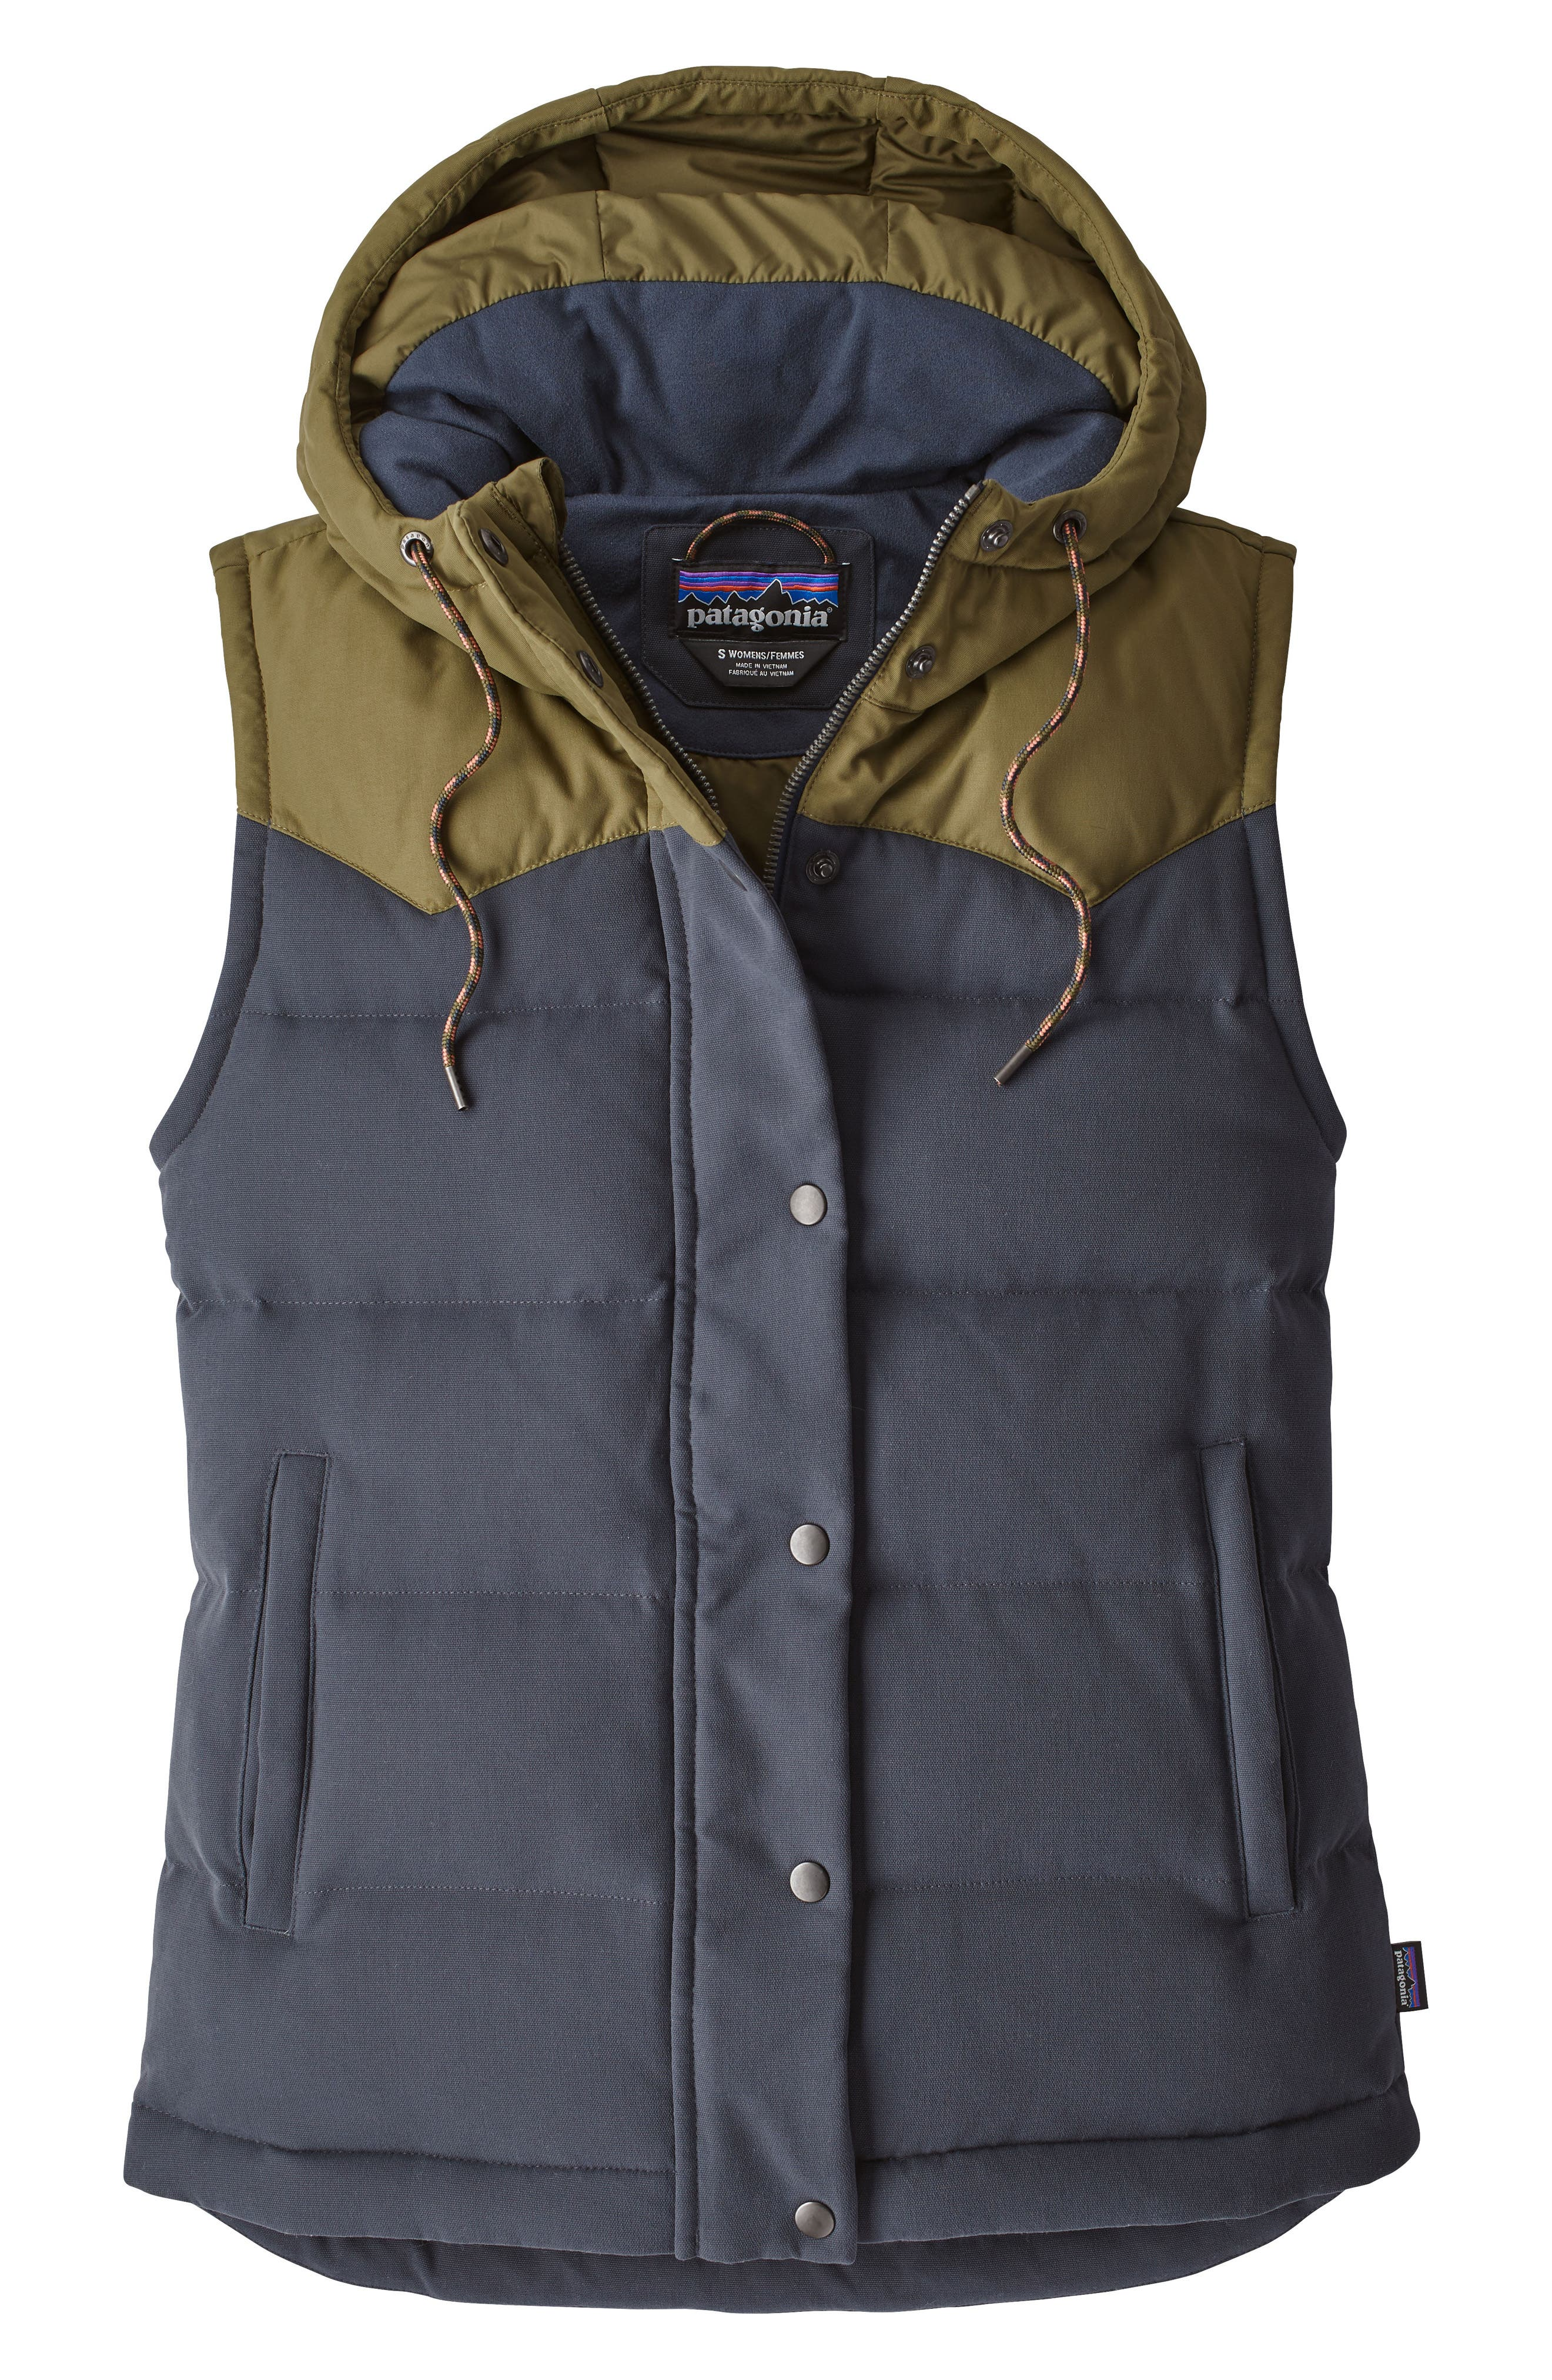 PATAGONIA, 'Bivy' Water Repellent 600 Fill Power Down Vest, Main thumbnail 1, color, SMOLDER BLUE W/ FATIGUE GREEN